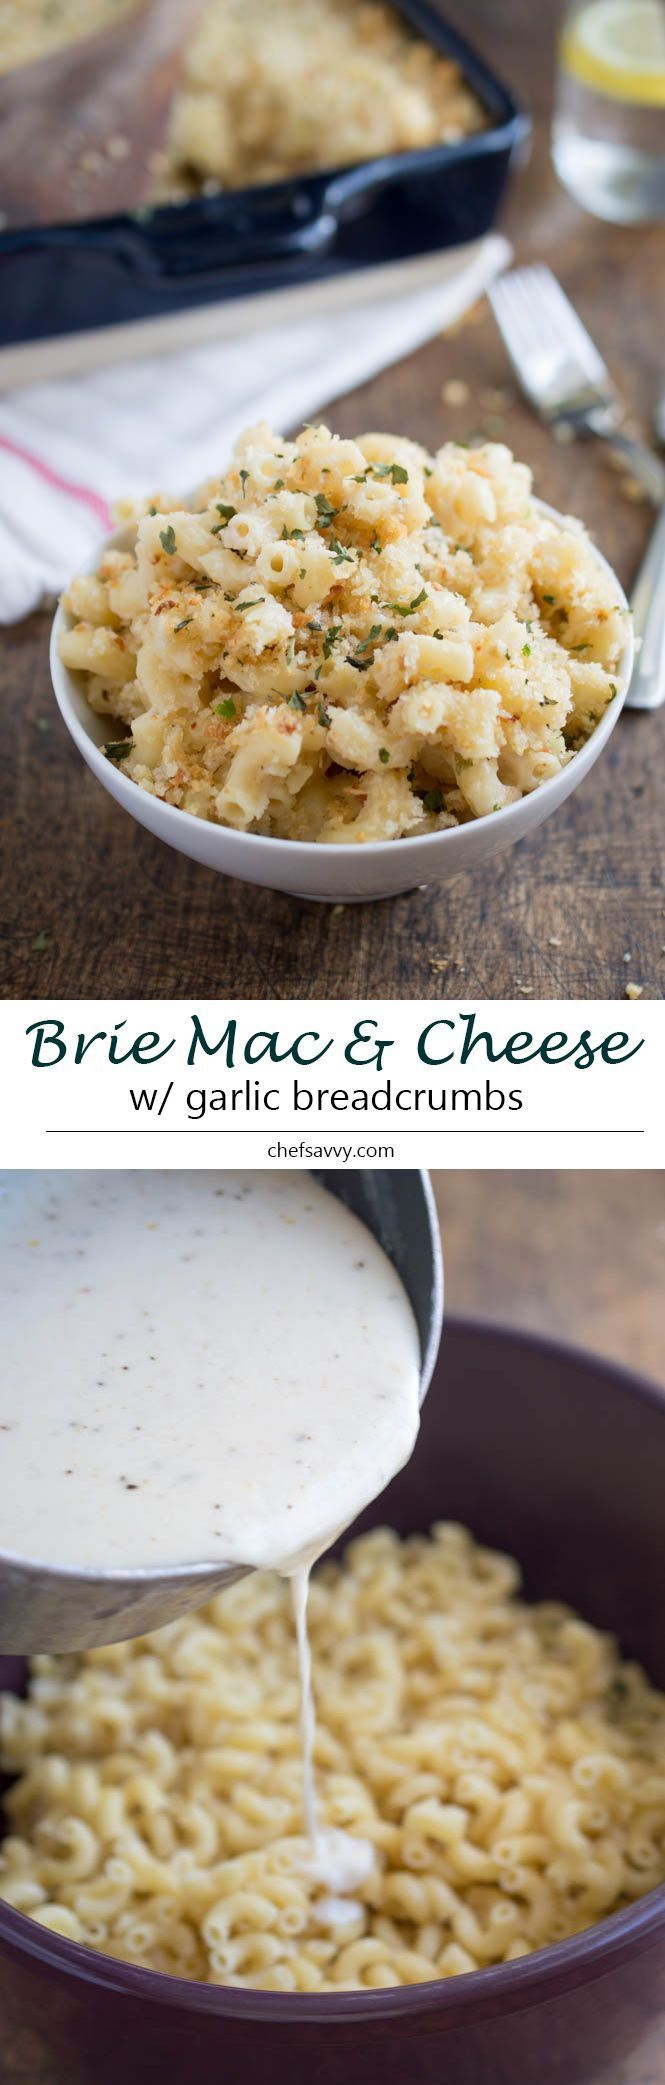 Serve this sophisticated oven-baked macaroni and cheese with a side of salad greens or steamed broccoli.   recipe for Three Cheese Mac and Cheese With Garlic Panko Breadcrumbs from Kelley at Chef Savvy